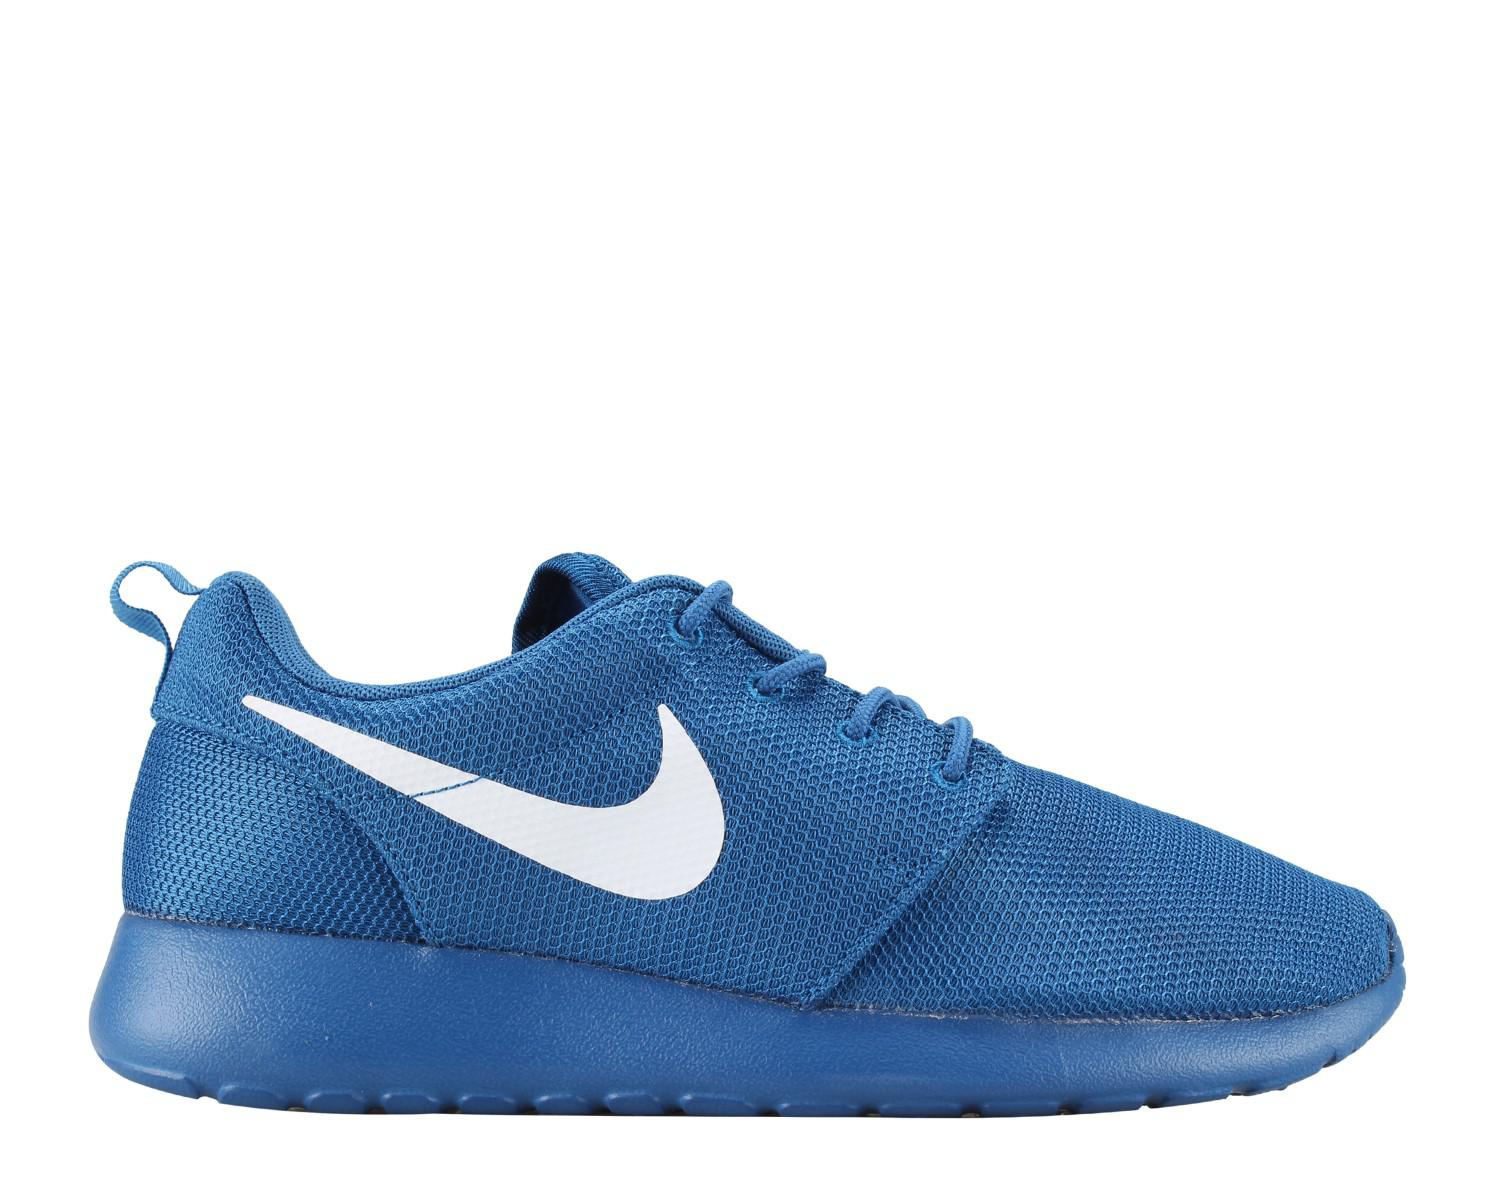 b1f6478804d6 ... release date lyst nike roshe one running shoes size 10.5 in blue for  men 32757 15bb1